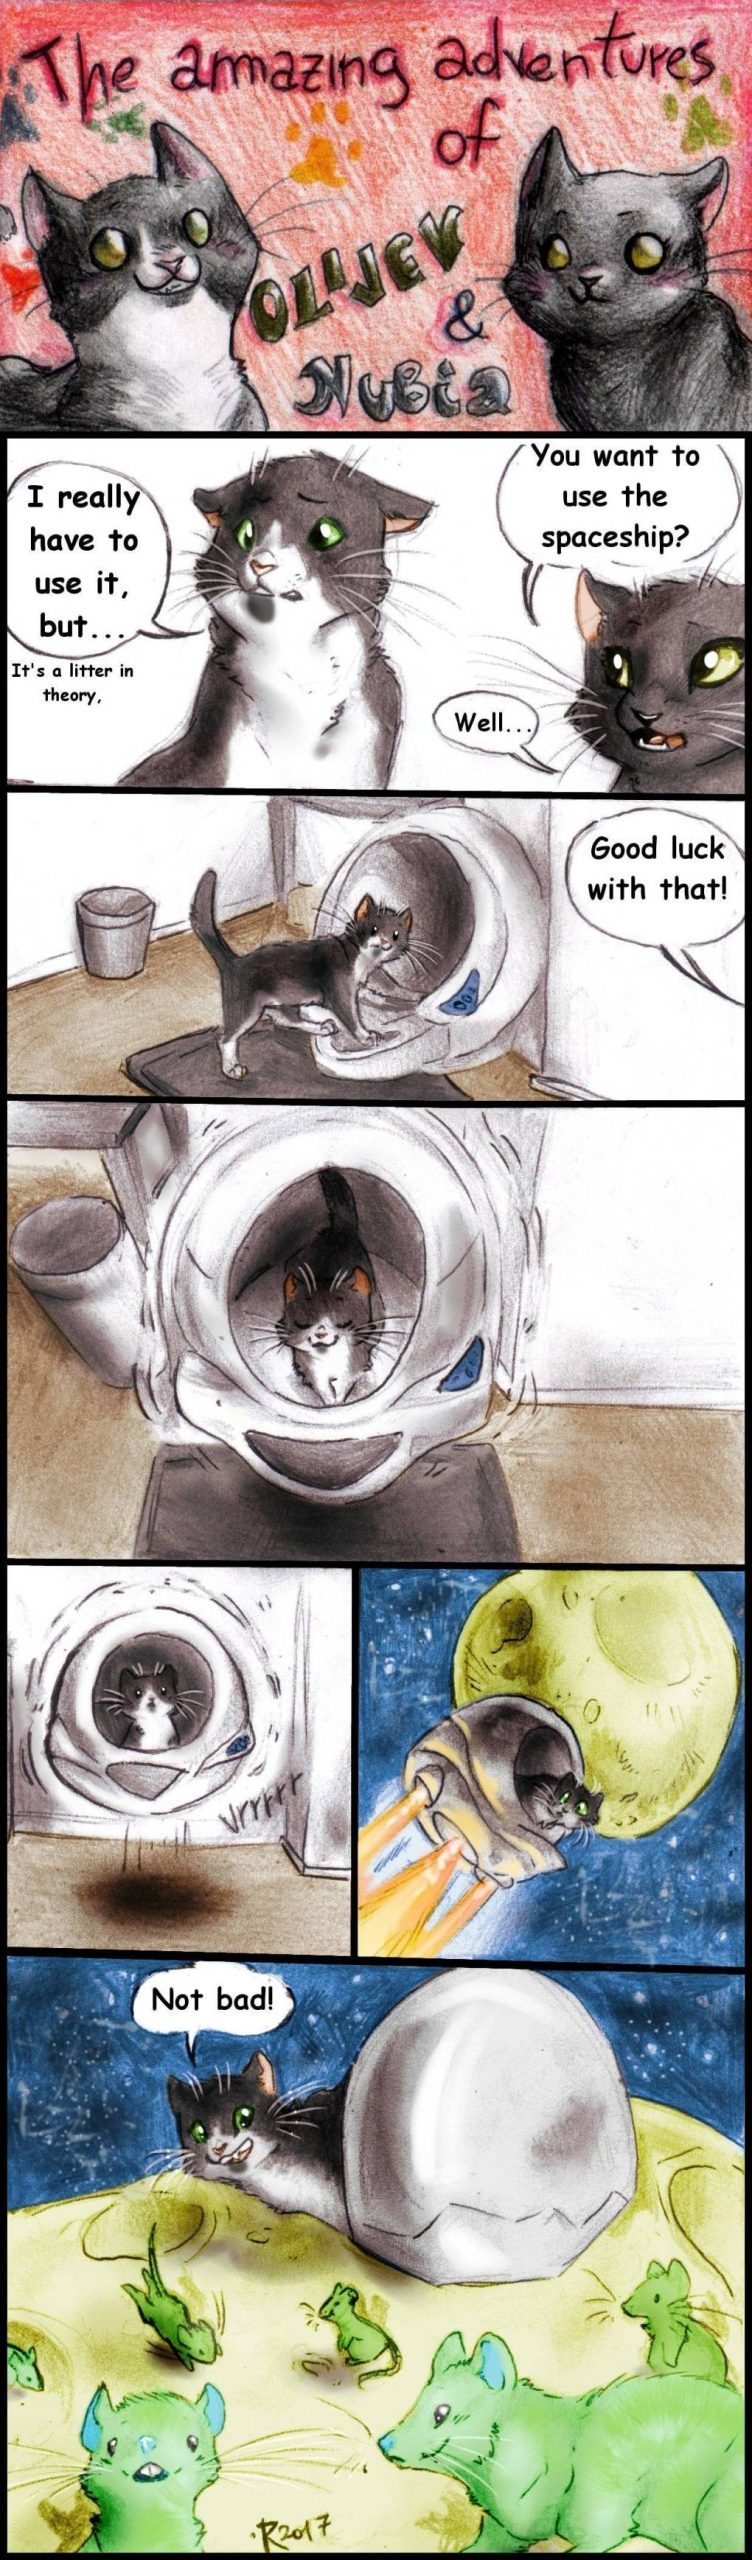 Blast From the Past: Cat Adventures in the Spaceship Part 1